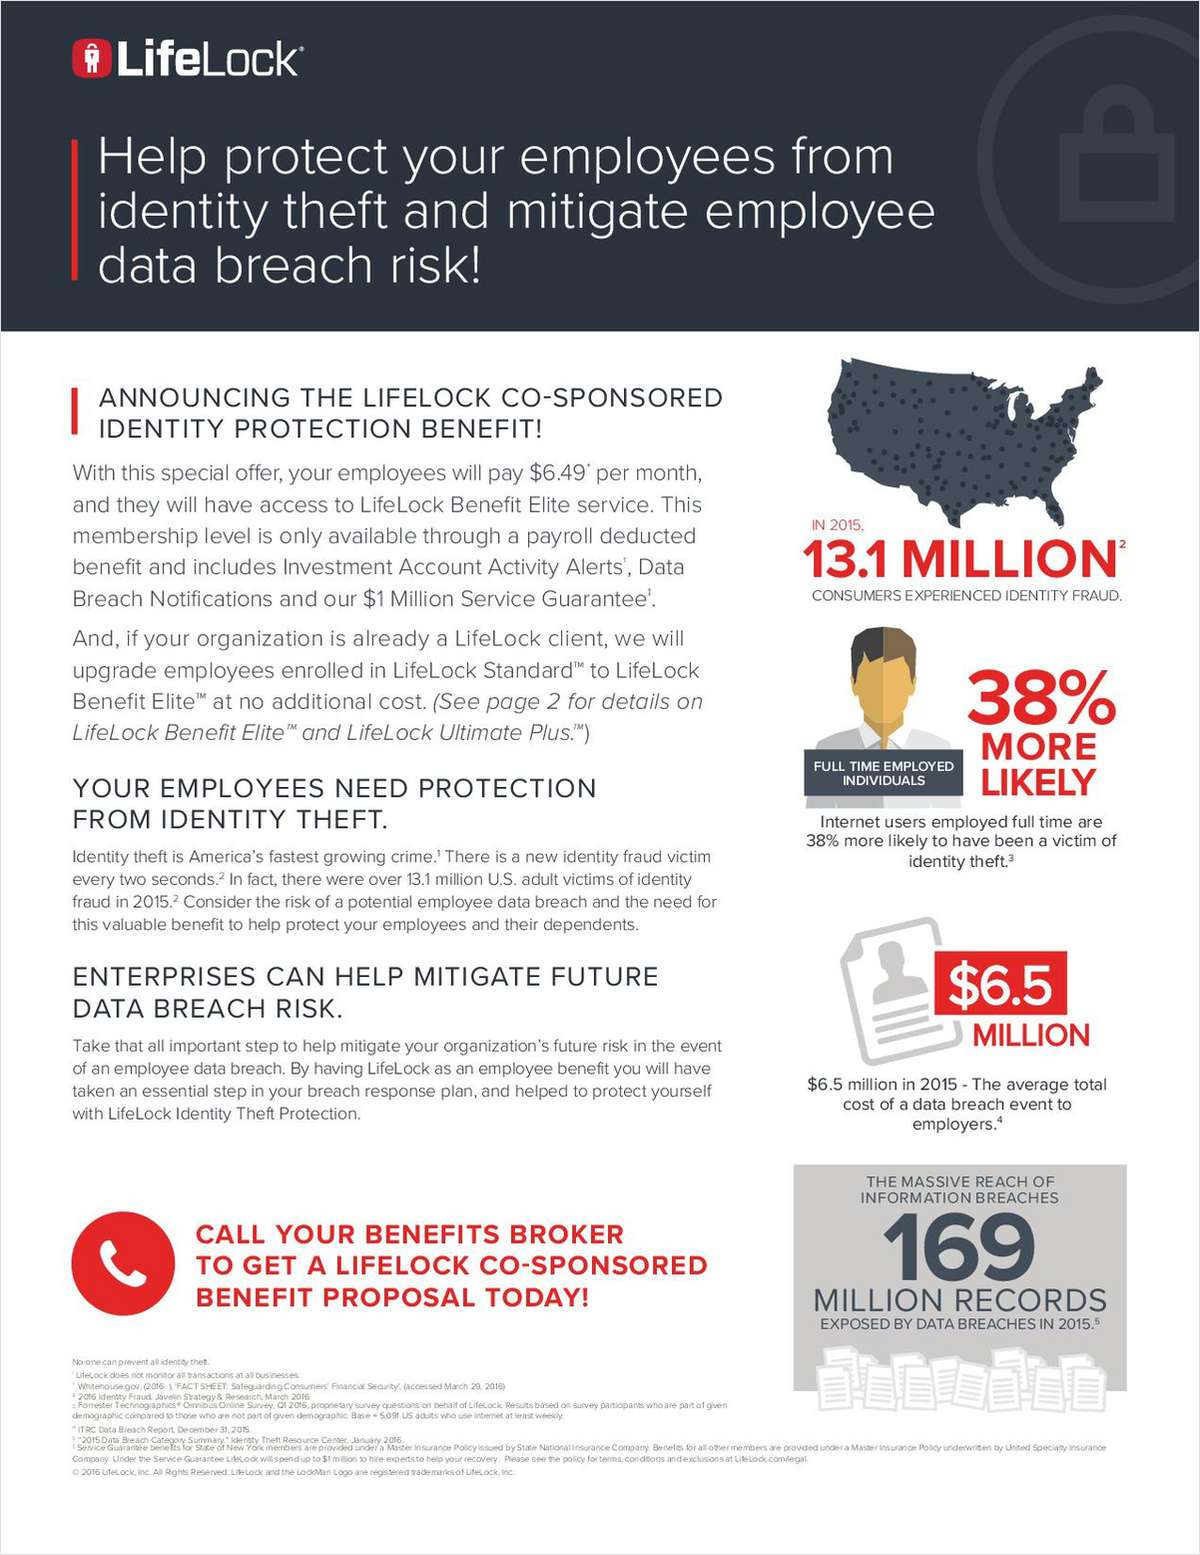 Help Protect Your Employees From Identity Theft and Mitigate Employee Data Breach Risk